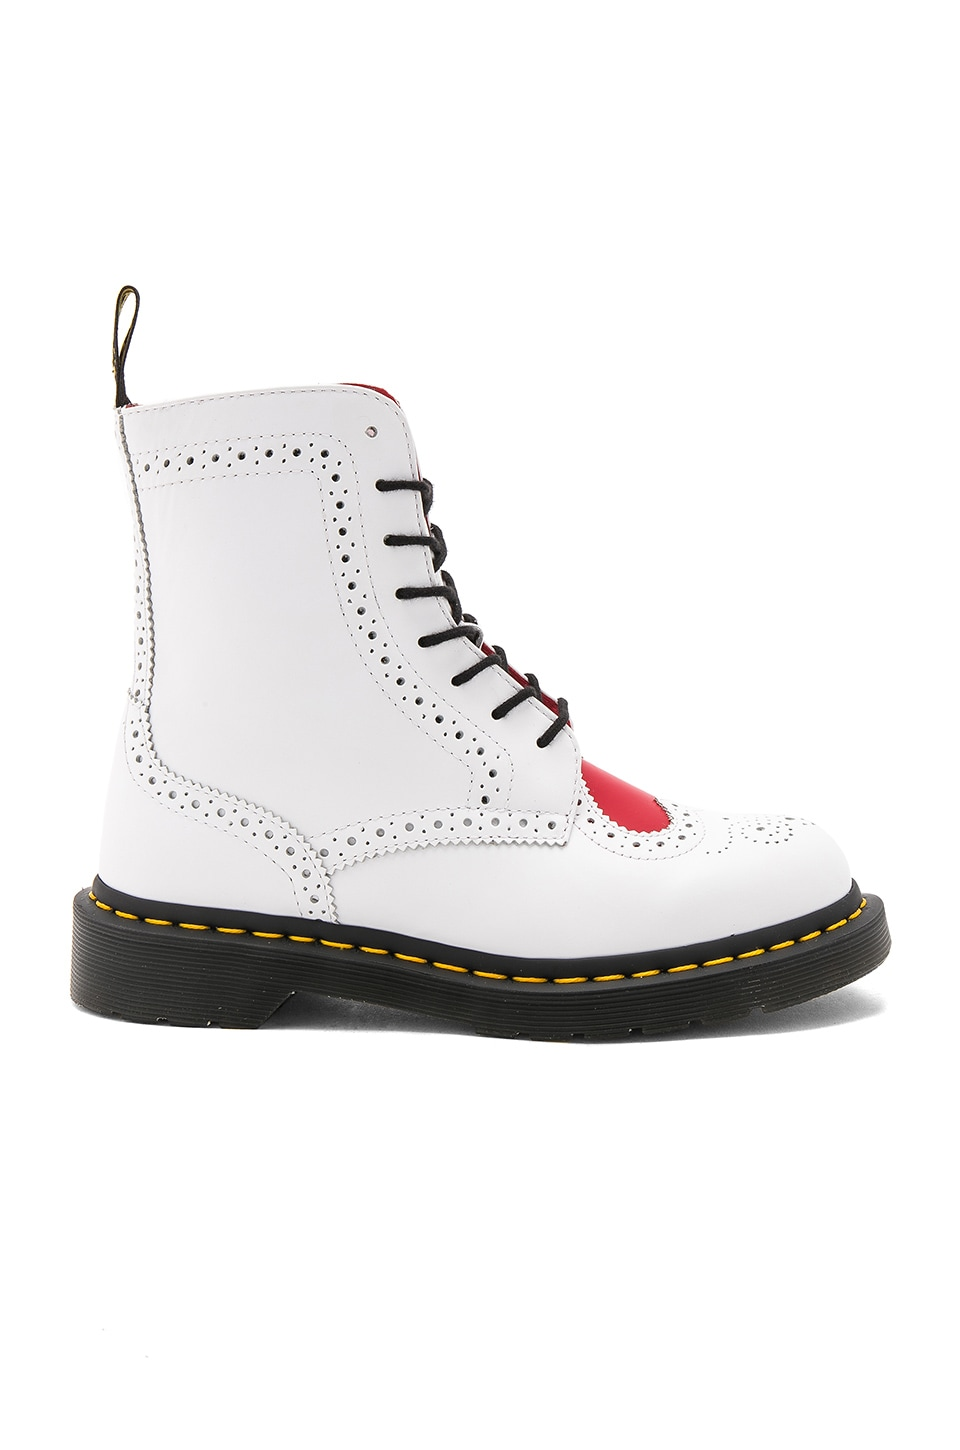 Dr. Martens Bentley II 8 Eye Boots in White Heart Red